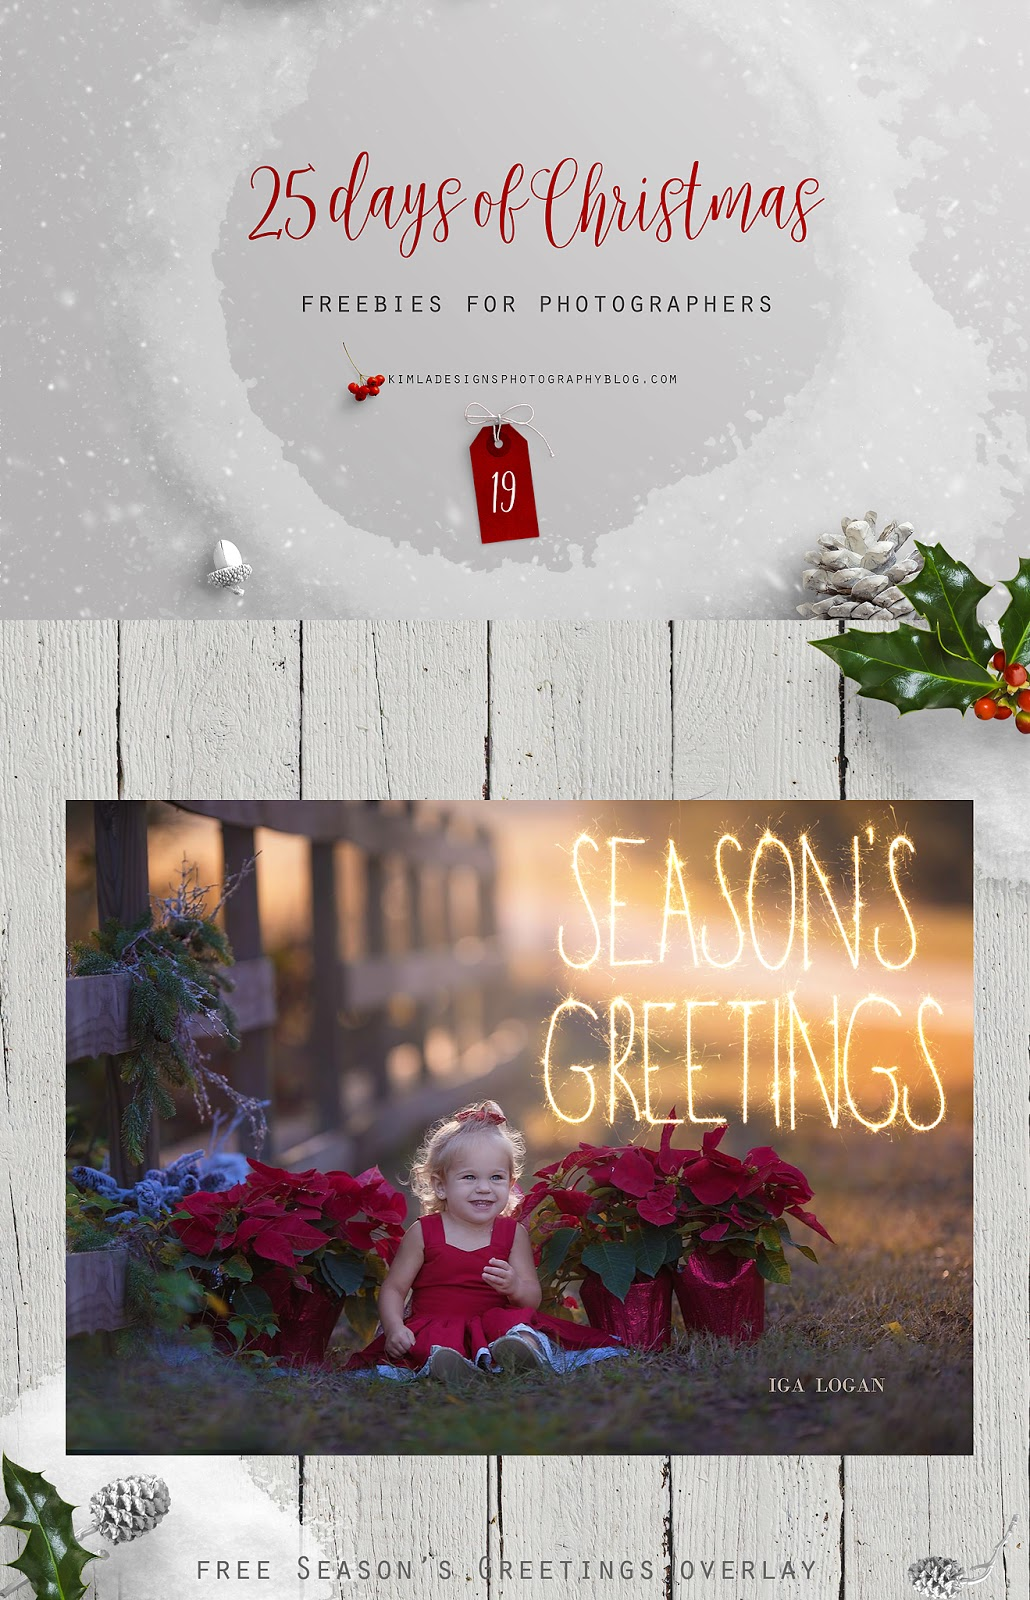 25 Days of Christmas Freebies for Photographers Day 19th